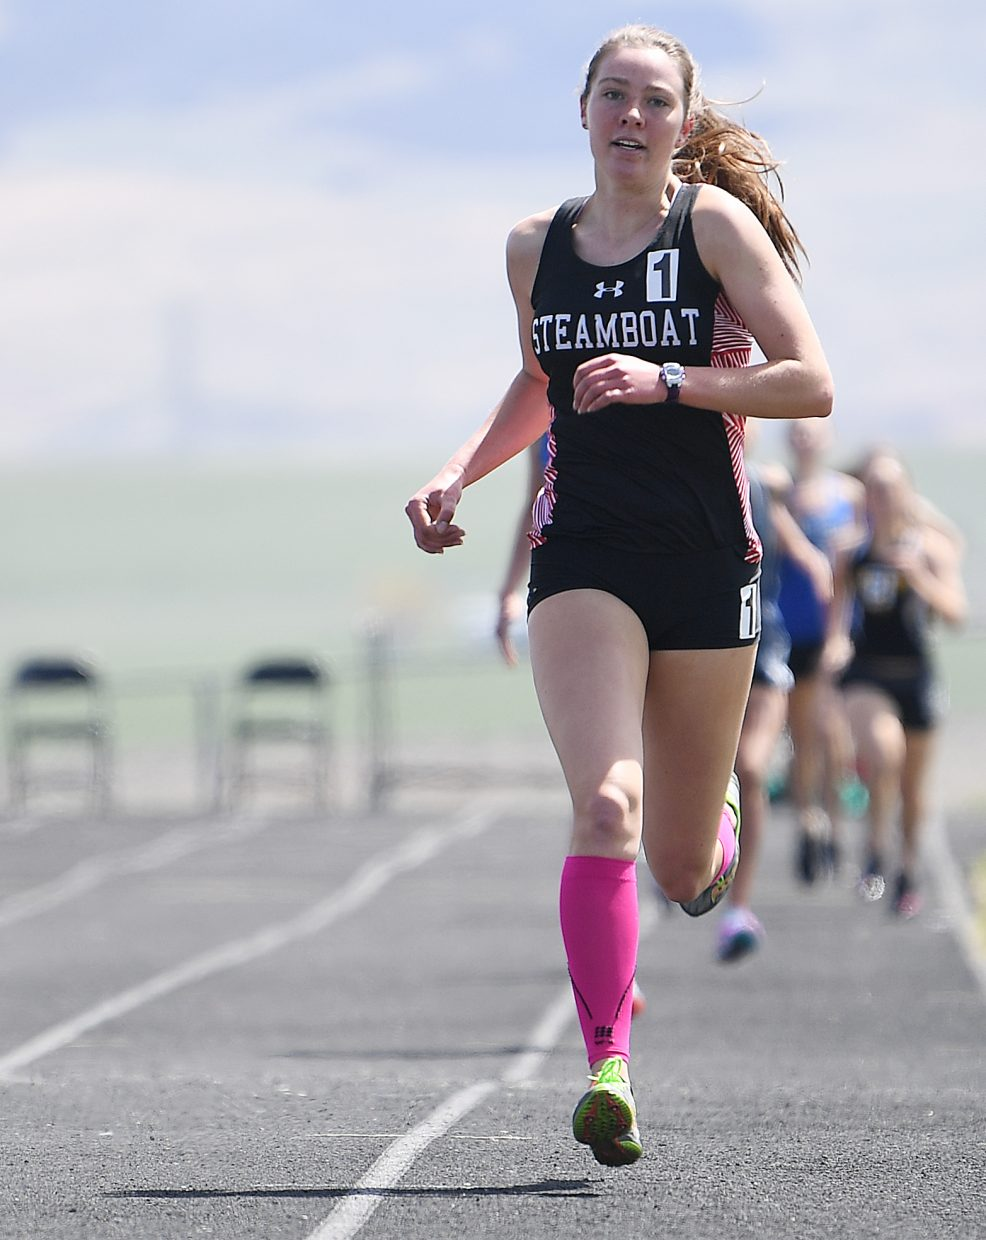 Steamboat's Winter Boese flies toward the finish line to win the girls 800-meter run Friday at Moffat County High School.